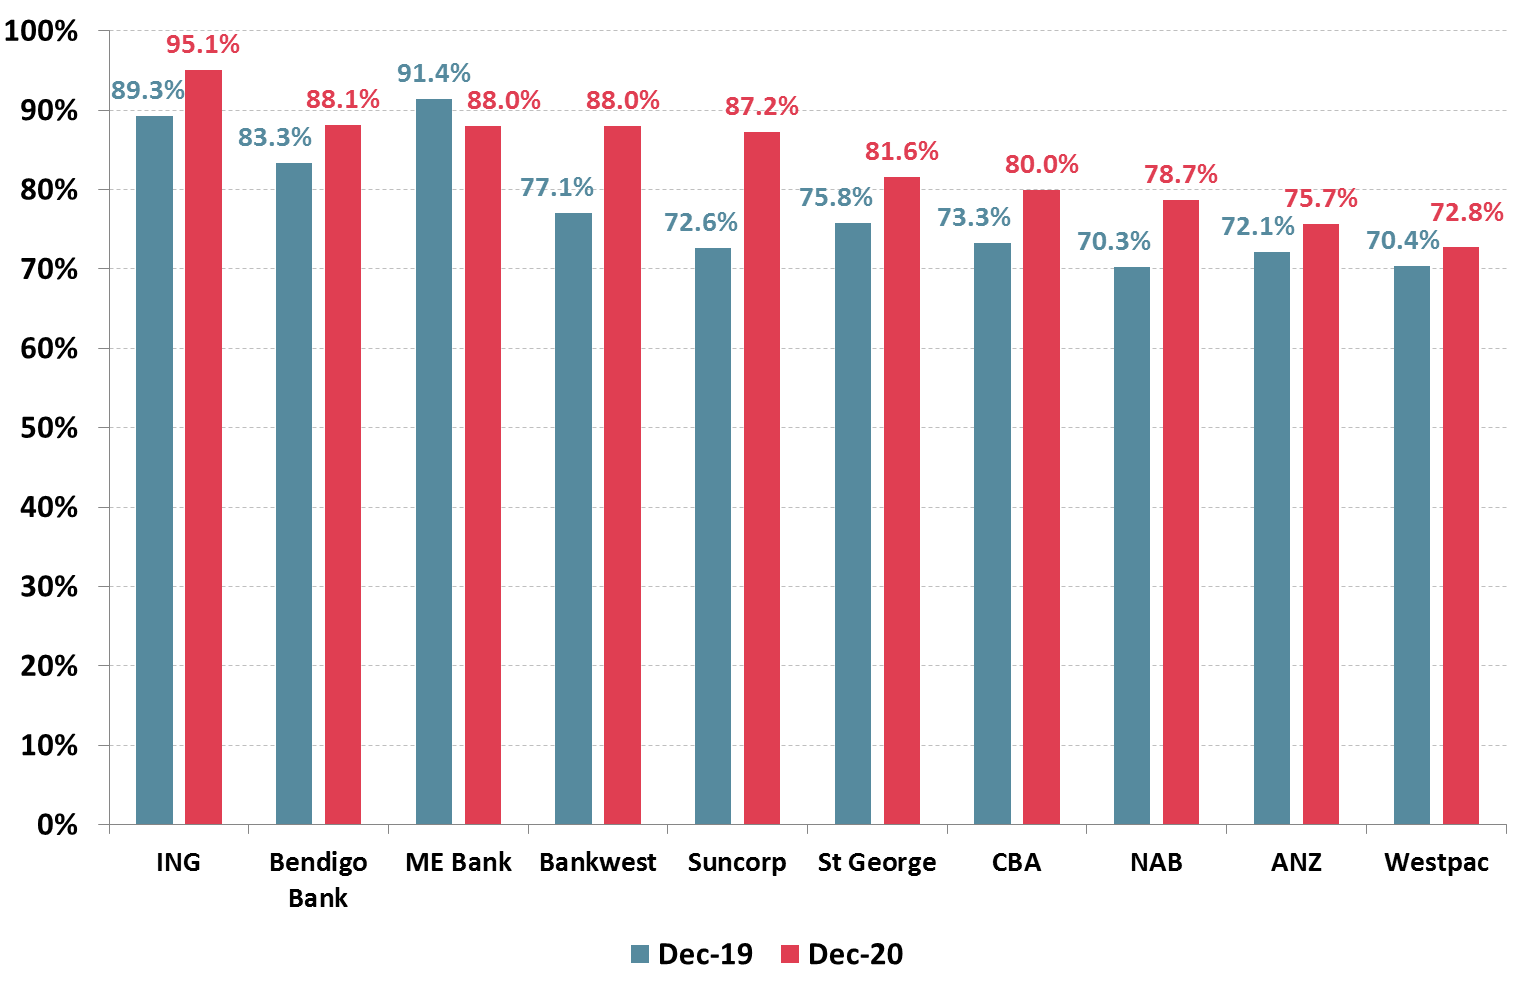 Australian banks, except ME Bank, reported improved satisfaction ratings over the last half of 2020.